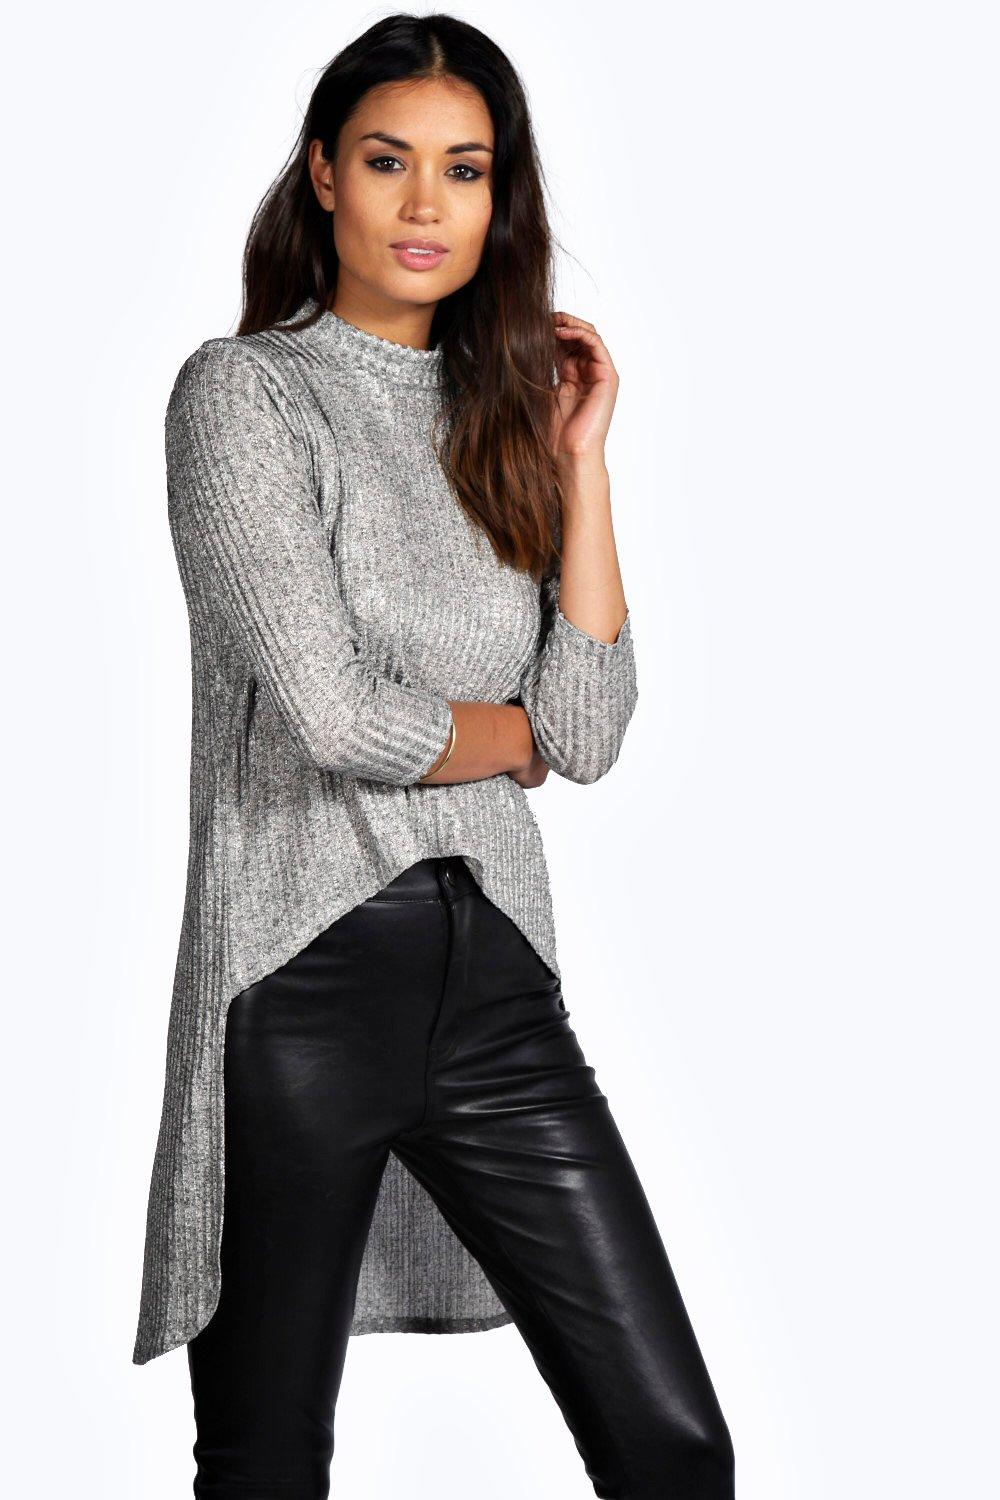 Nothing tops off your look like a stylish women's shirt. Sears carries the latest women's tops in a wide variety of colors, sizes and designs. Whether you need blouses for the office, t-shirts for the weekend or tank tops for the gym, there are many options that can be .